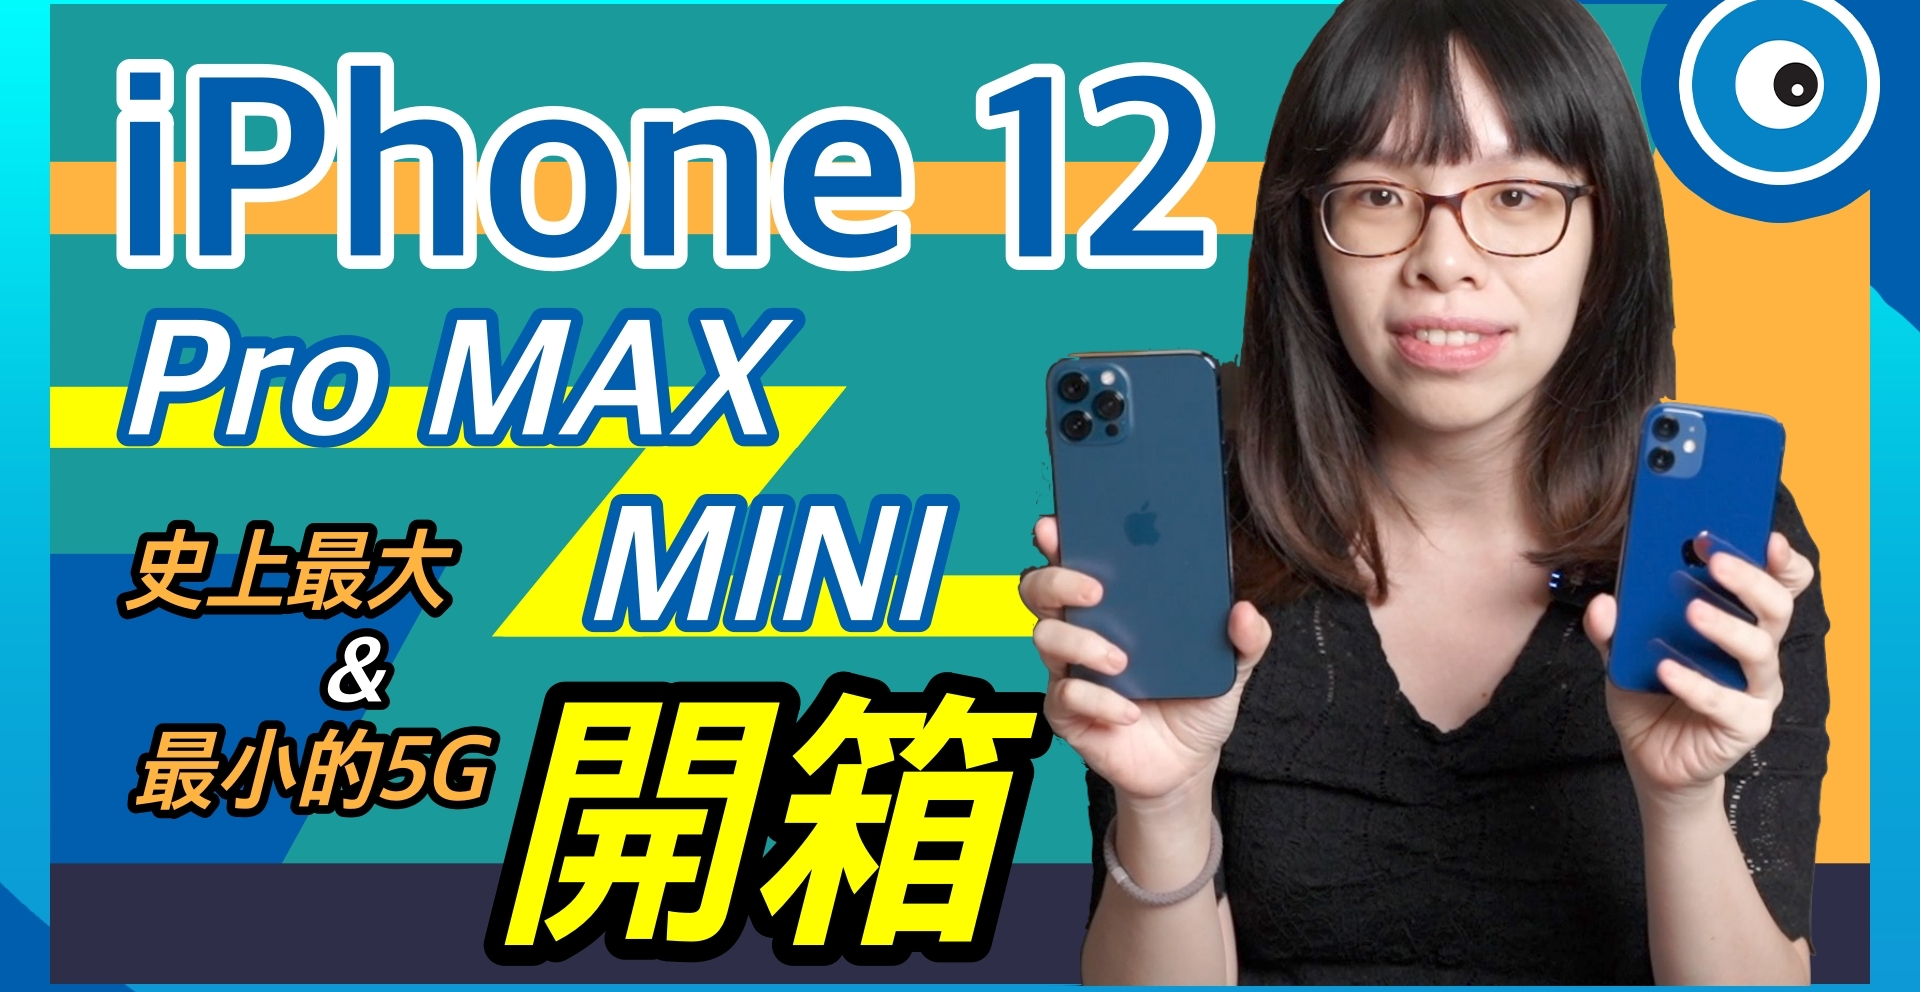 iPhone 12 Pro Max、iPhone 12 mini 開箱影片!即將上市的 iPhone 12 Pro Max、iPhone 12 mini 動手玩。